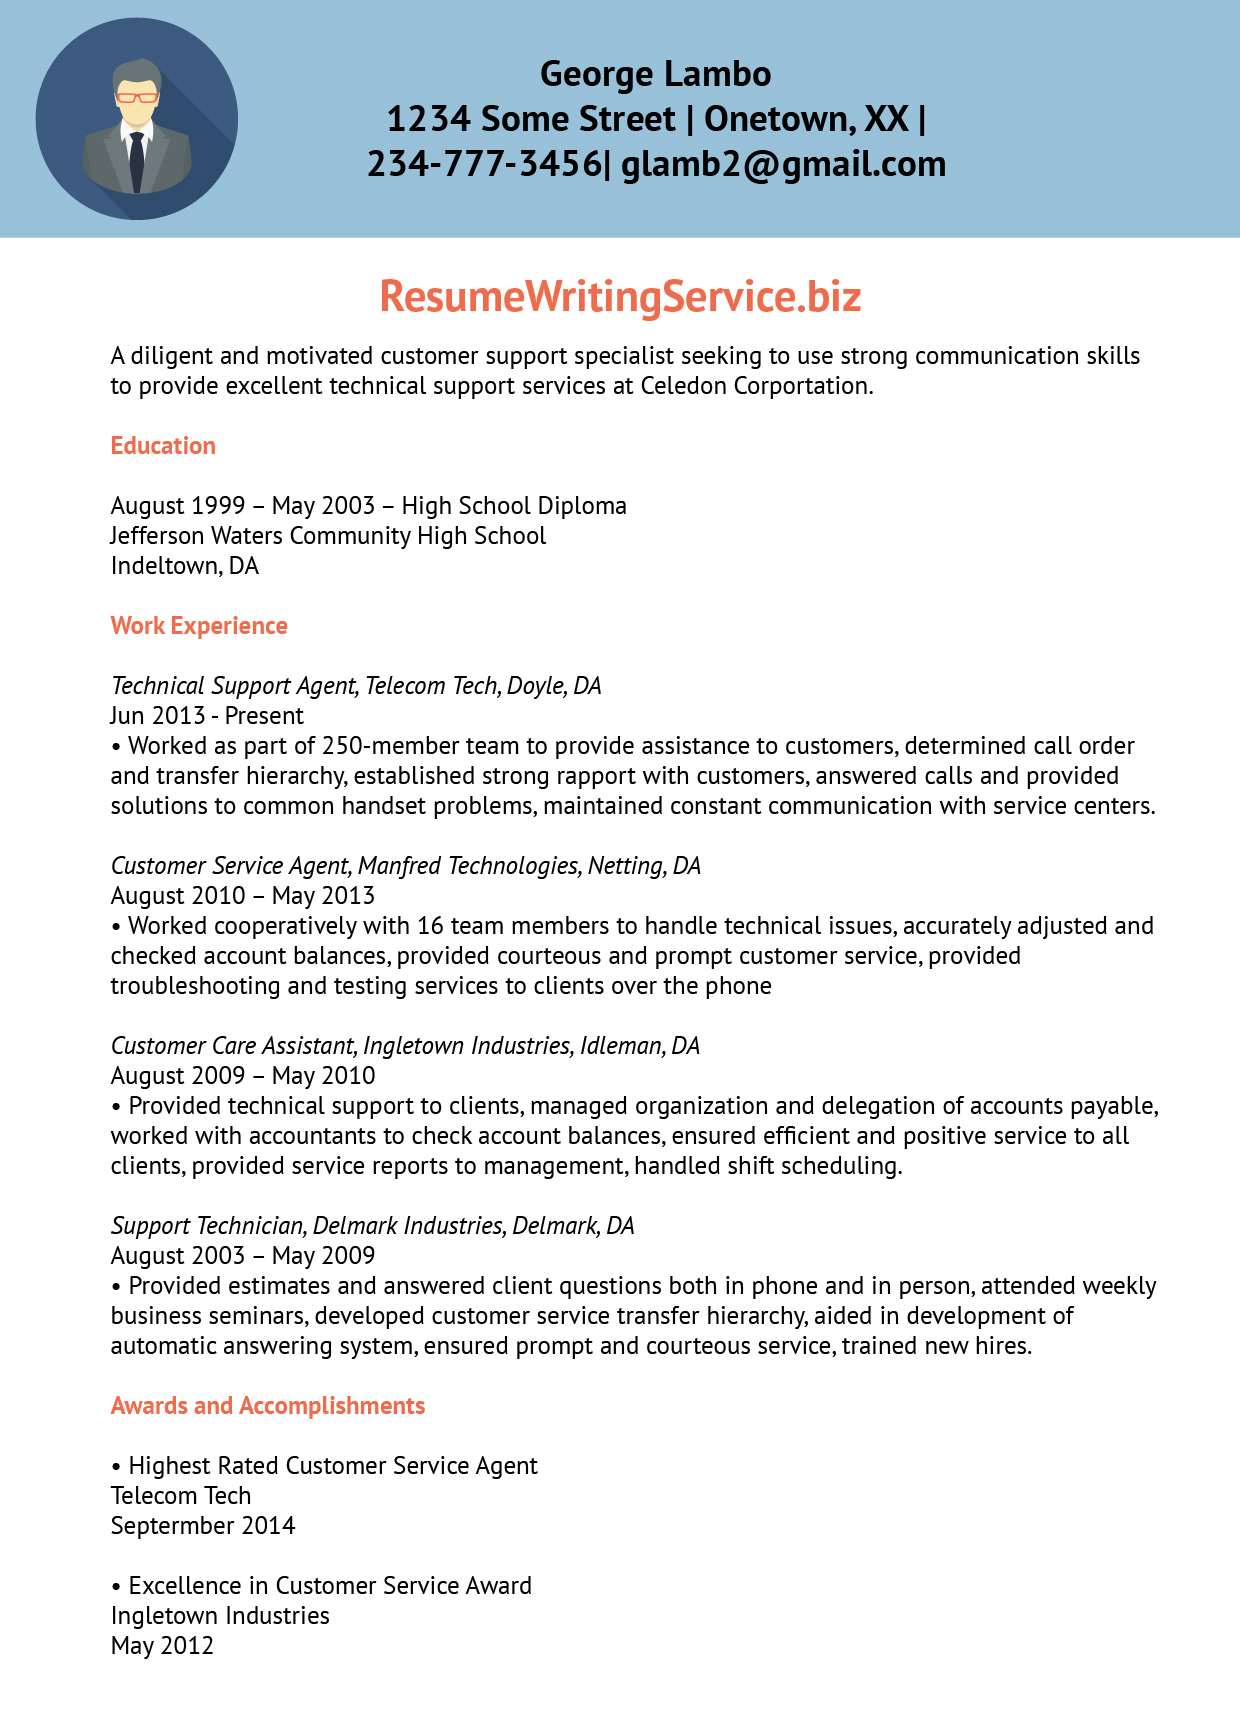 professional resume writing services hire certified writers who